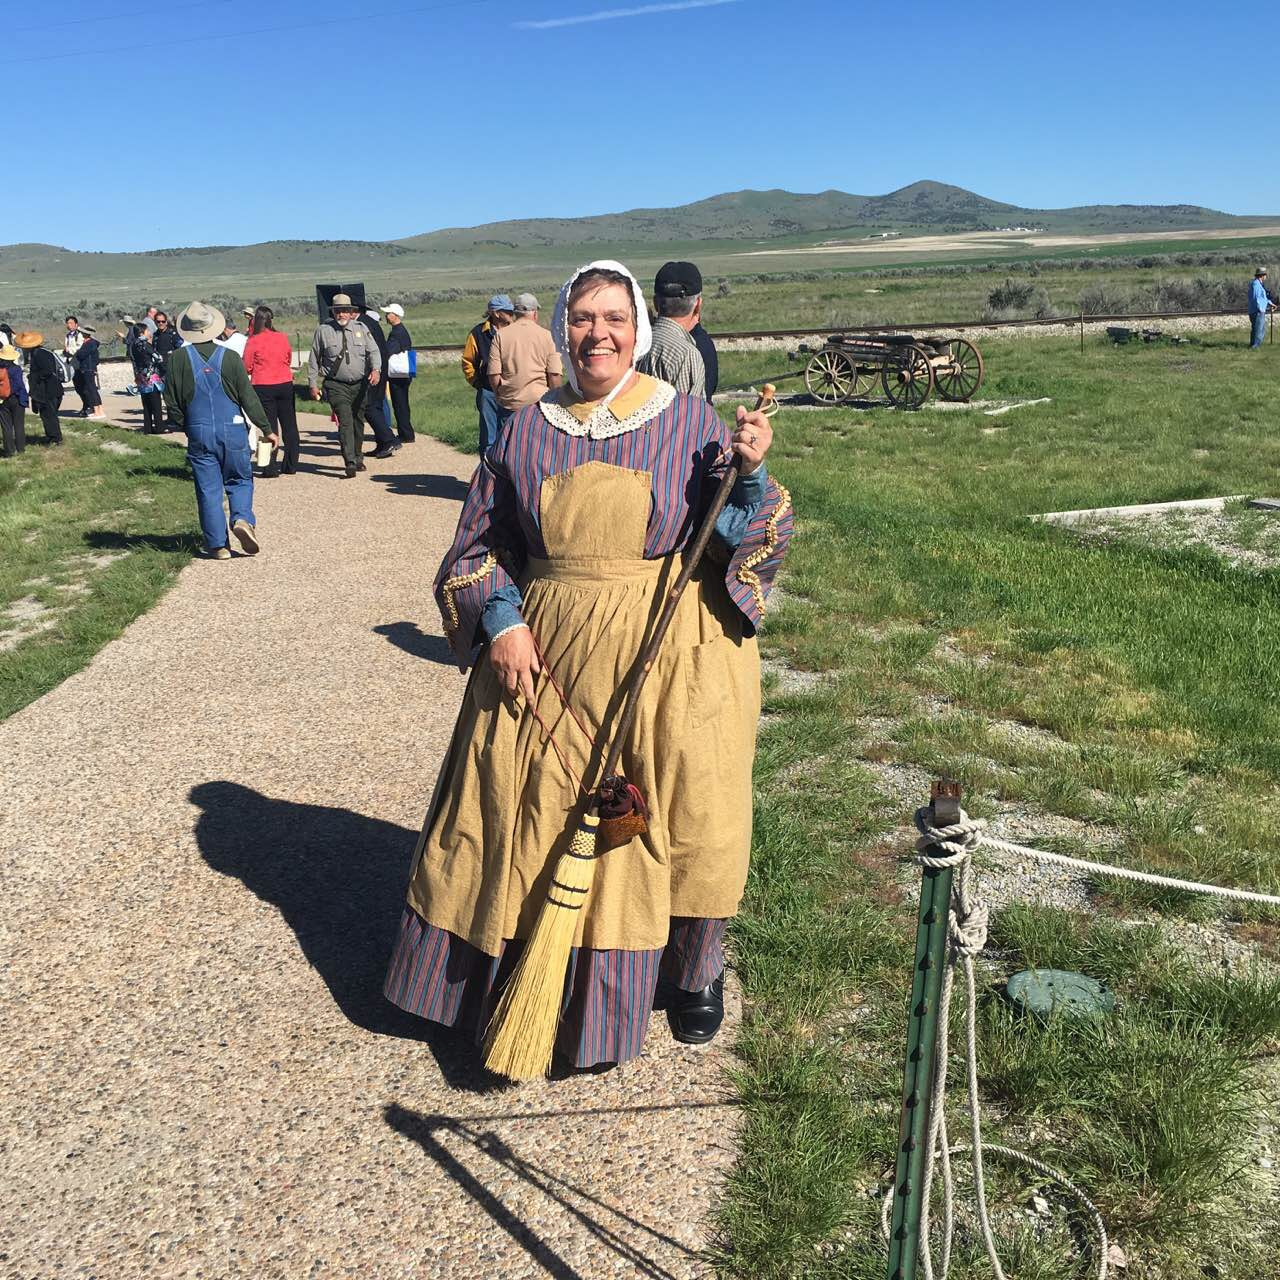 "<span class=""entry-title-primary"">UCA President Haipei Shue Attends Golden Spike Festival</span> <span class=""entry-subtitle"">Last spikes of the Transcontinental Railroad</span>"